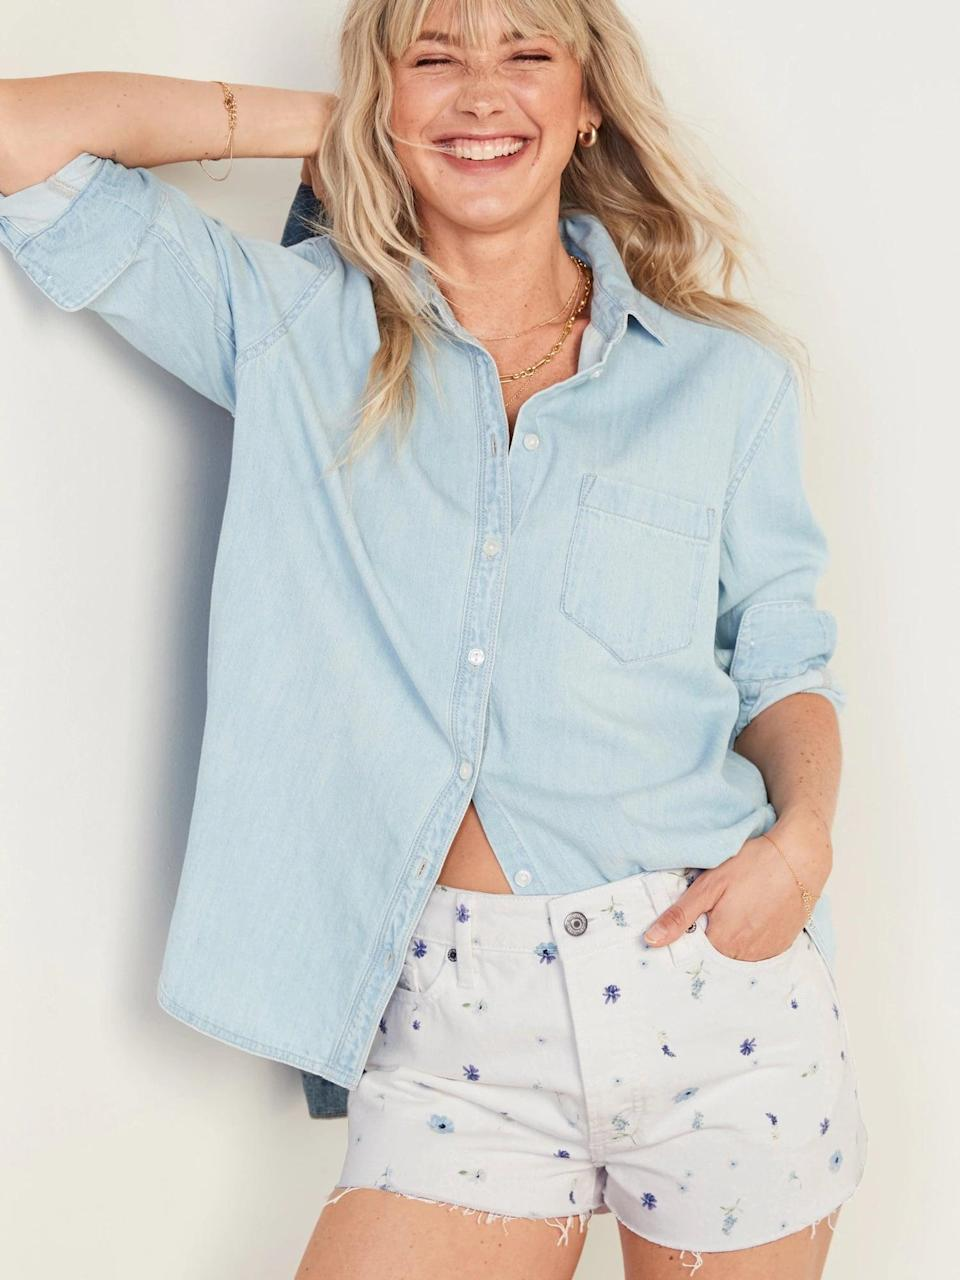 <p>These <span>Old Navy High-Waisted O.G. Straight Floral Button-Fly Cut-Off Jean Shorts</span> ($25, originally $35) bring a bouquet to your bottoms and pair so nicely with solid blue tops, too.</p>